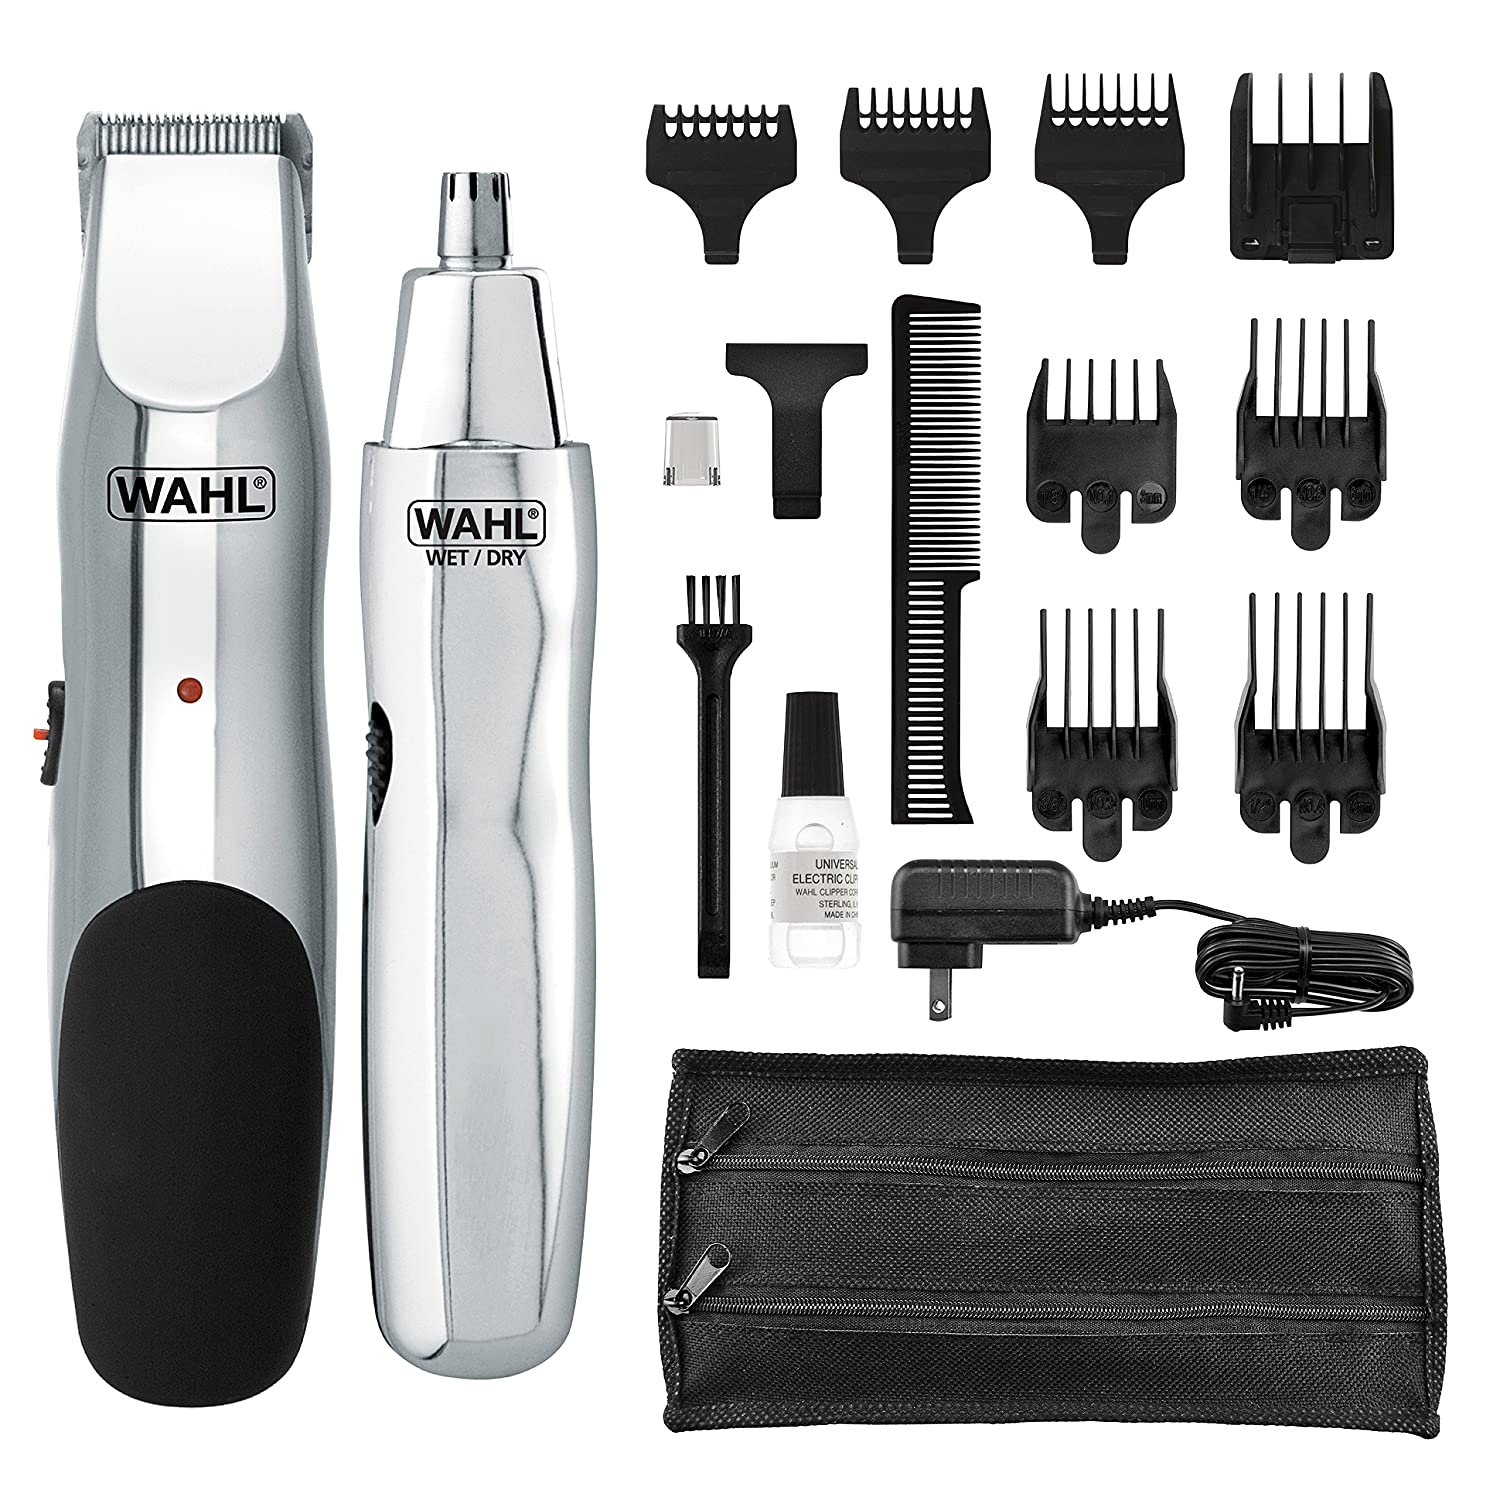 Wahl 5622 Groomsman Rechargeable Electric Razor